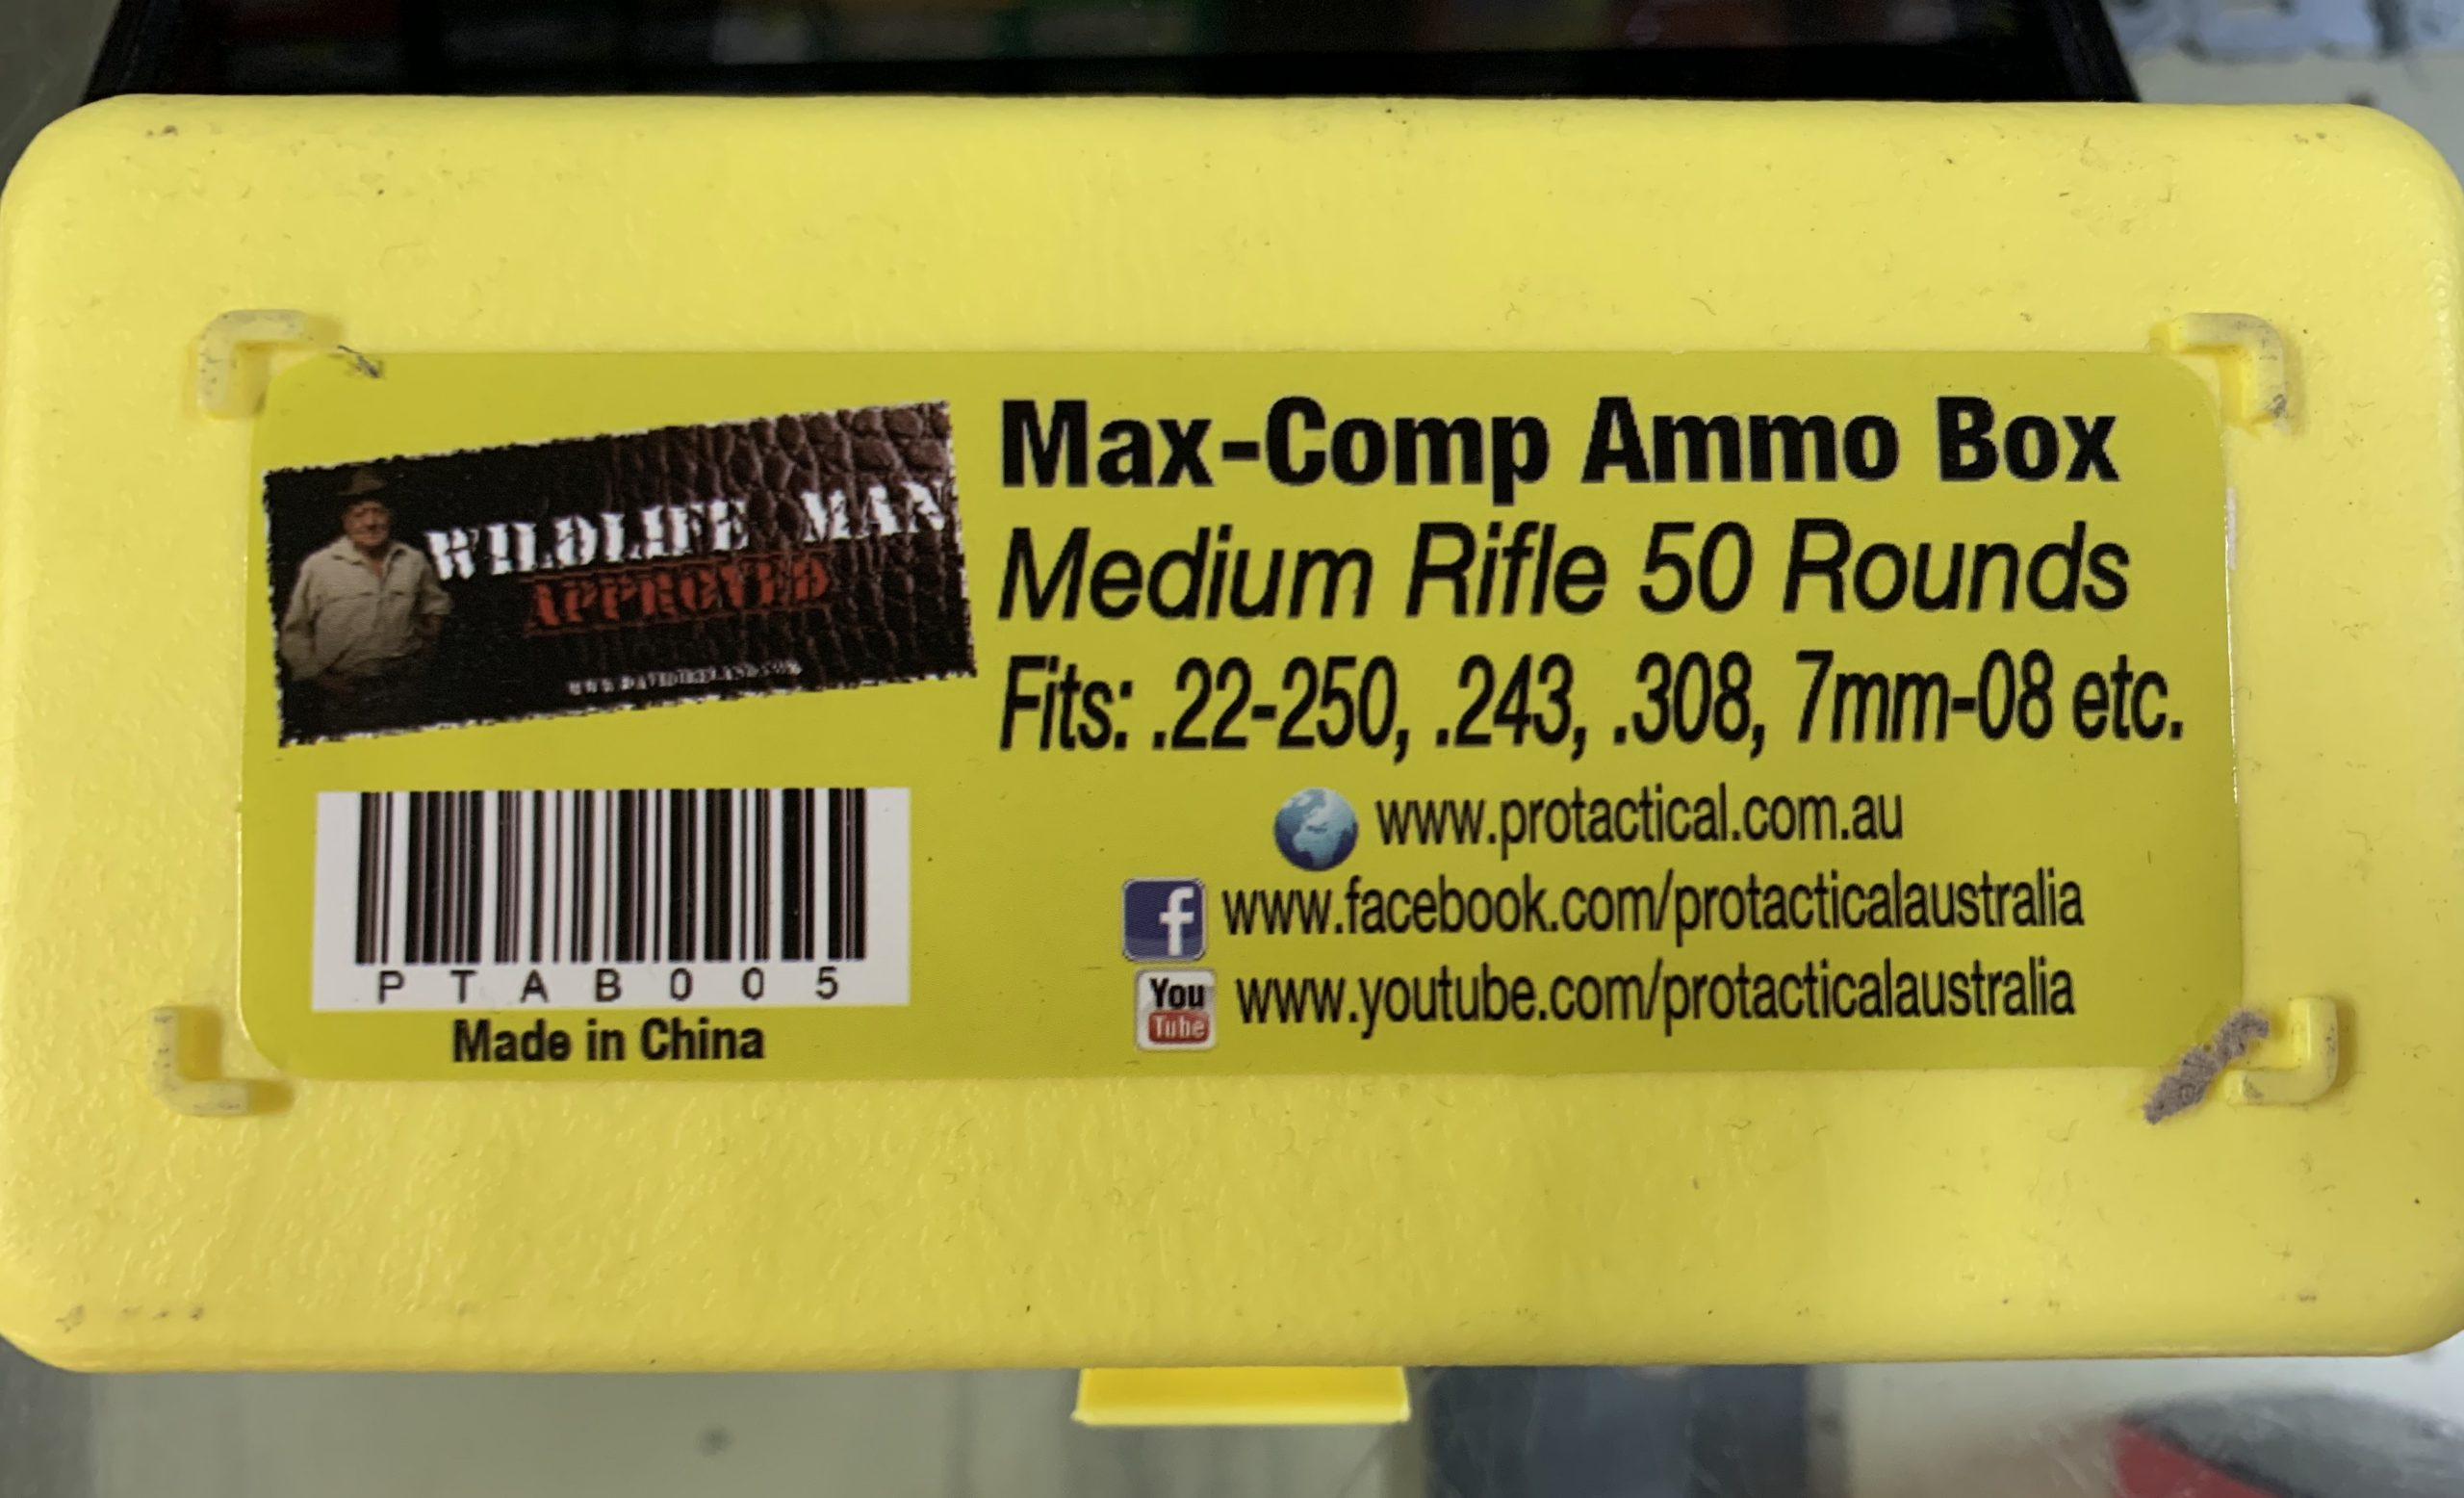 Medium rifle ammo box 22-250/243/308/7mm etc (50 capacity) MaxGuard